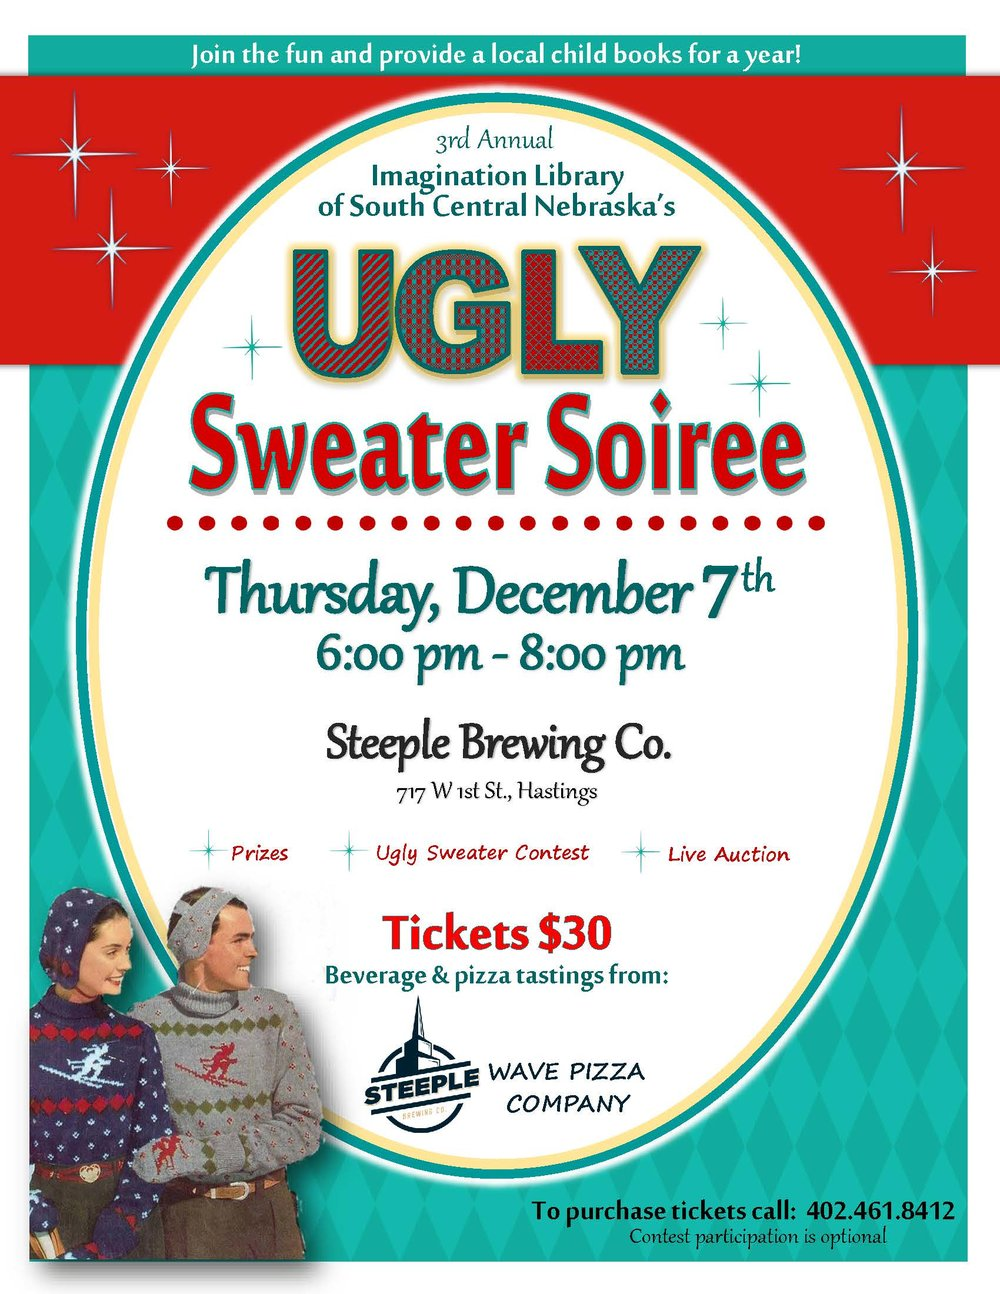 US Soiree flyer.jpg